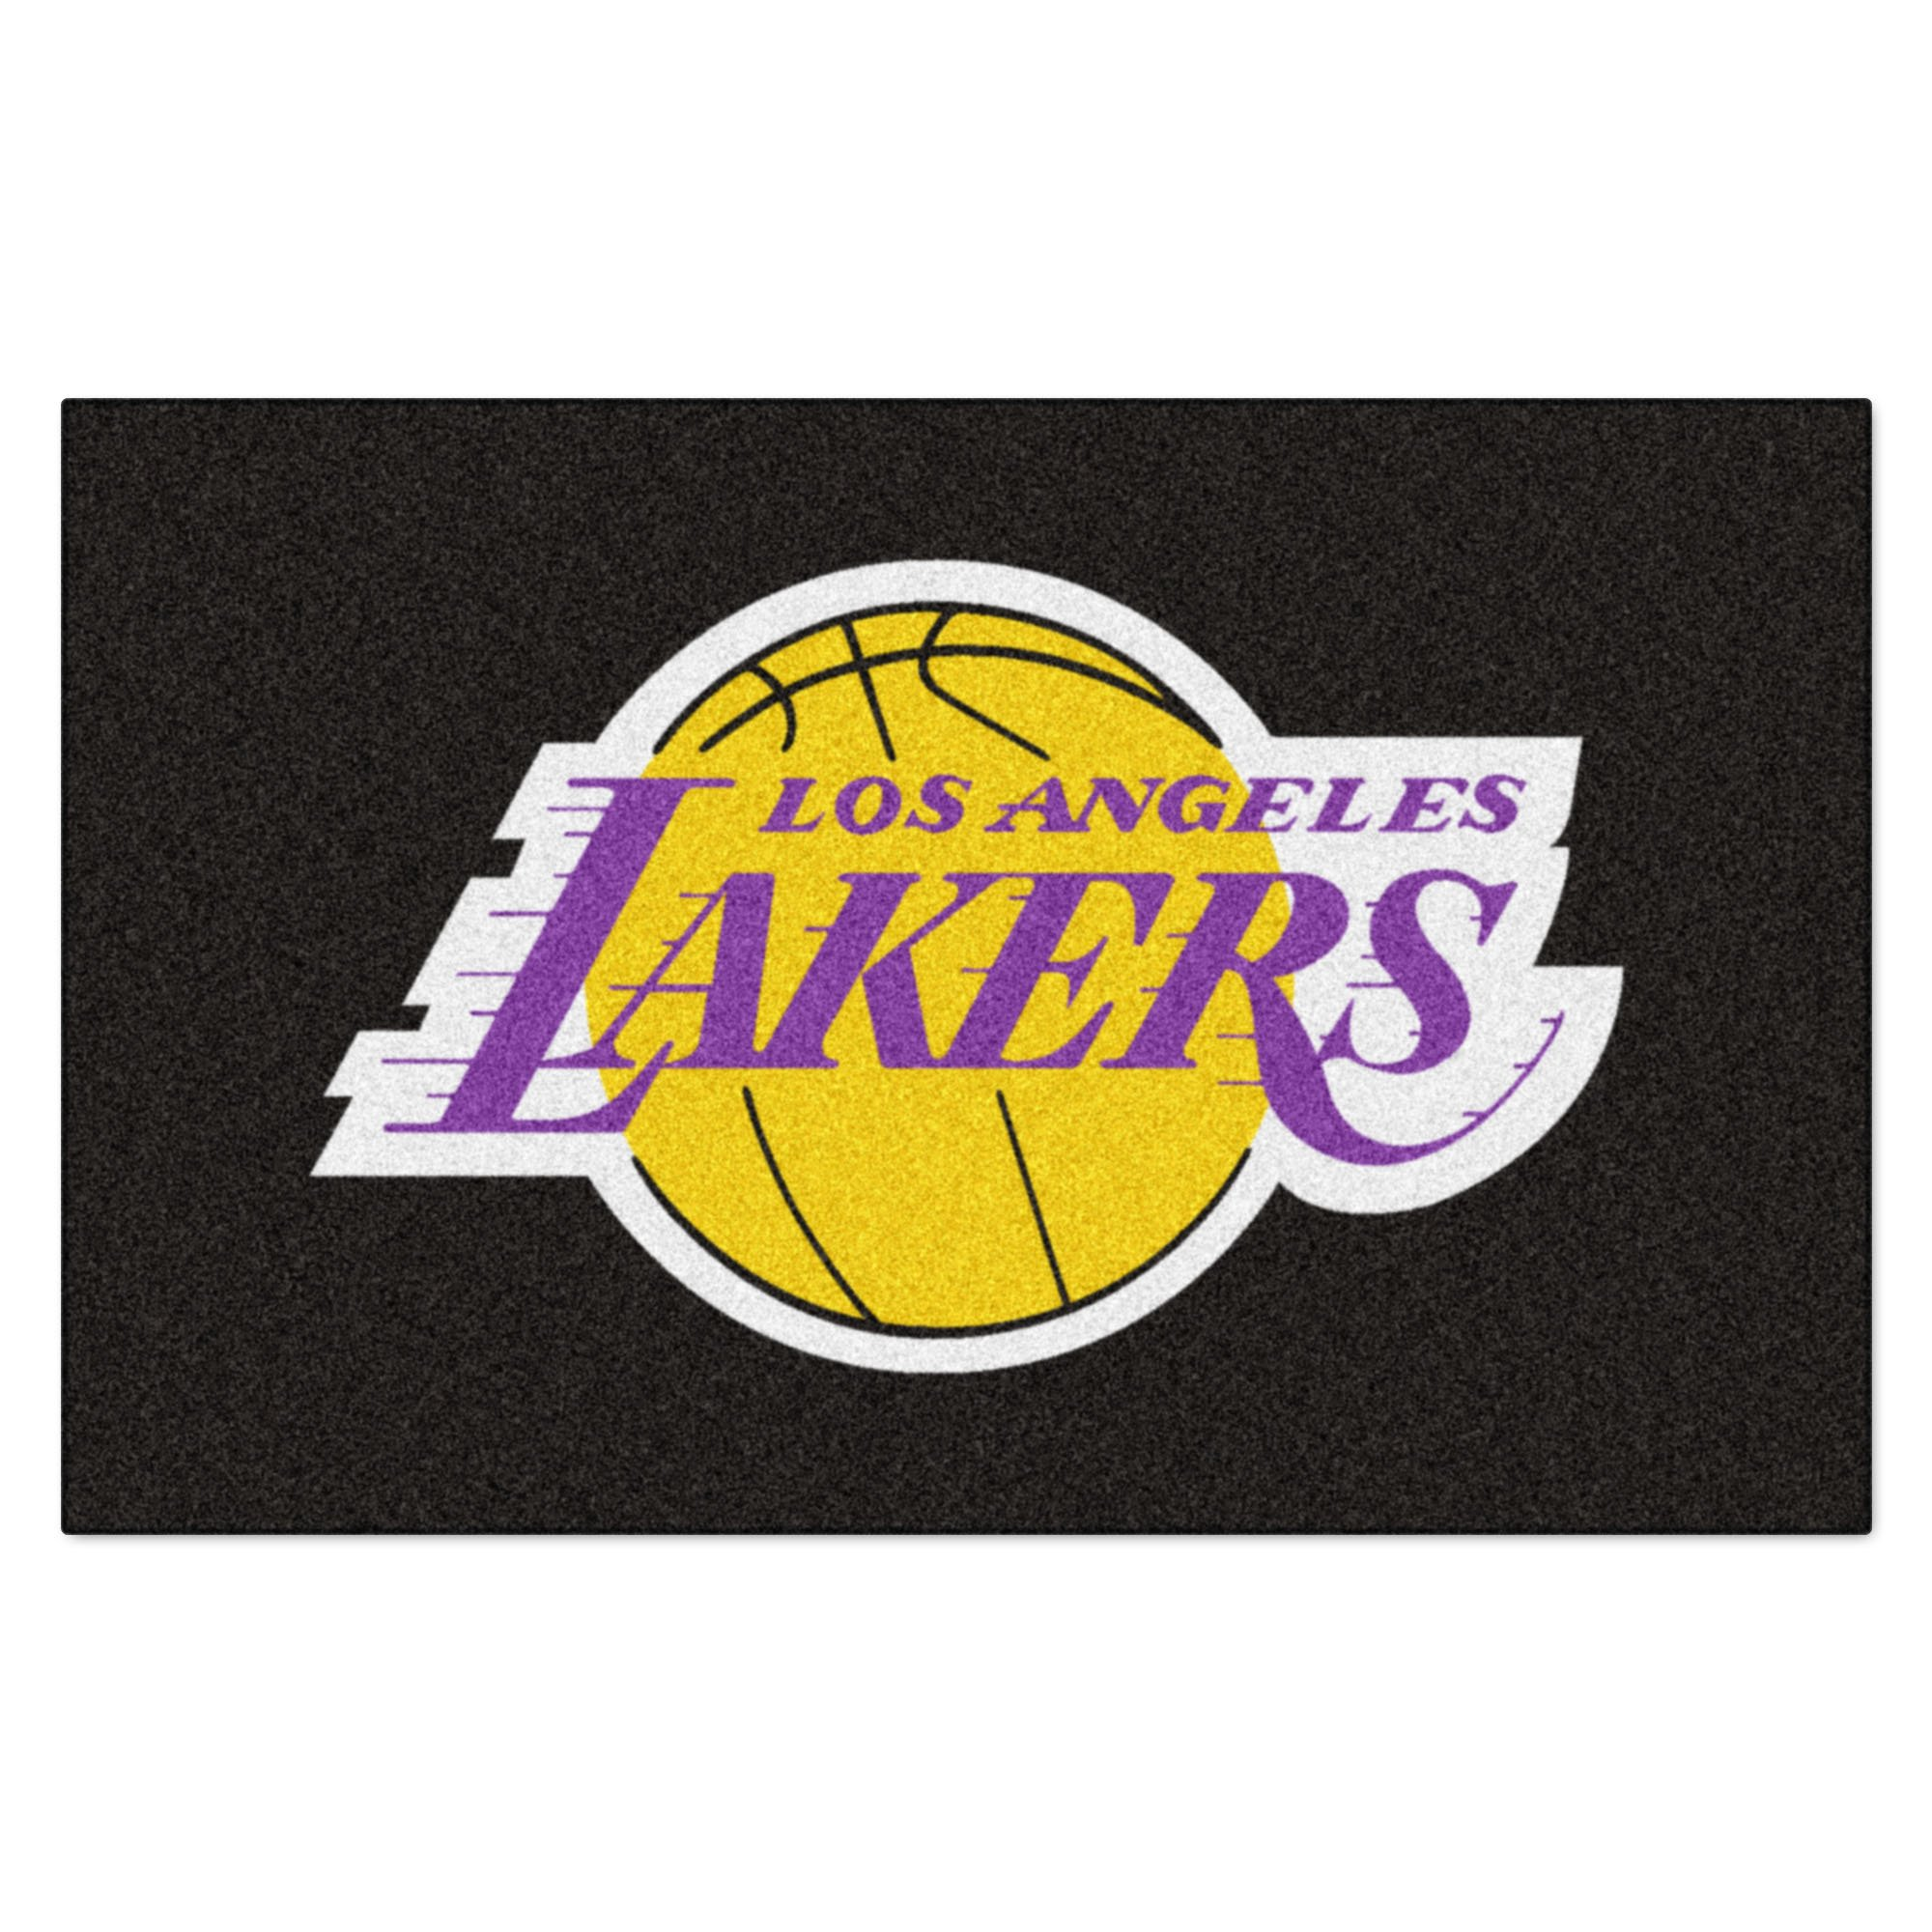 FANMATS NBA Los Angeles Lakers Nylon Face Ultimat Rug